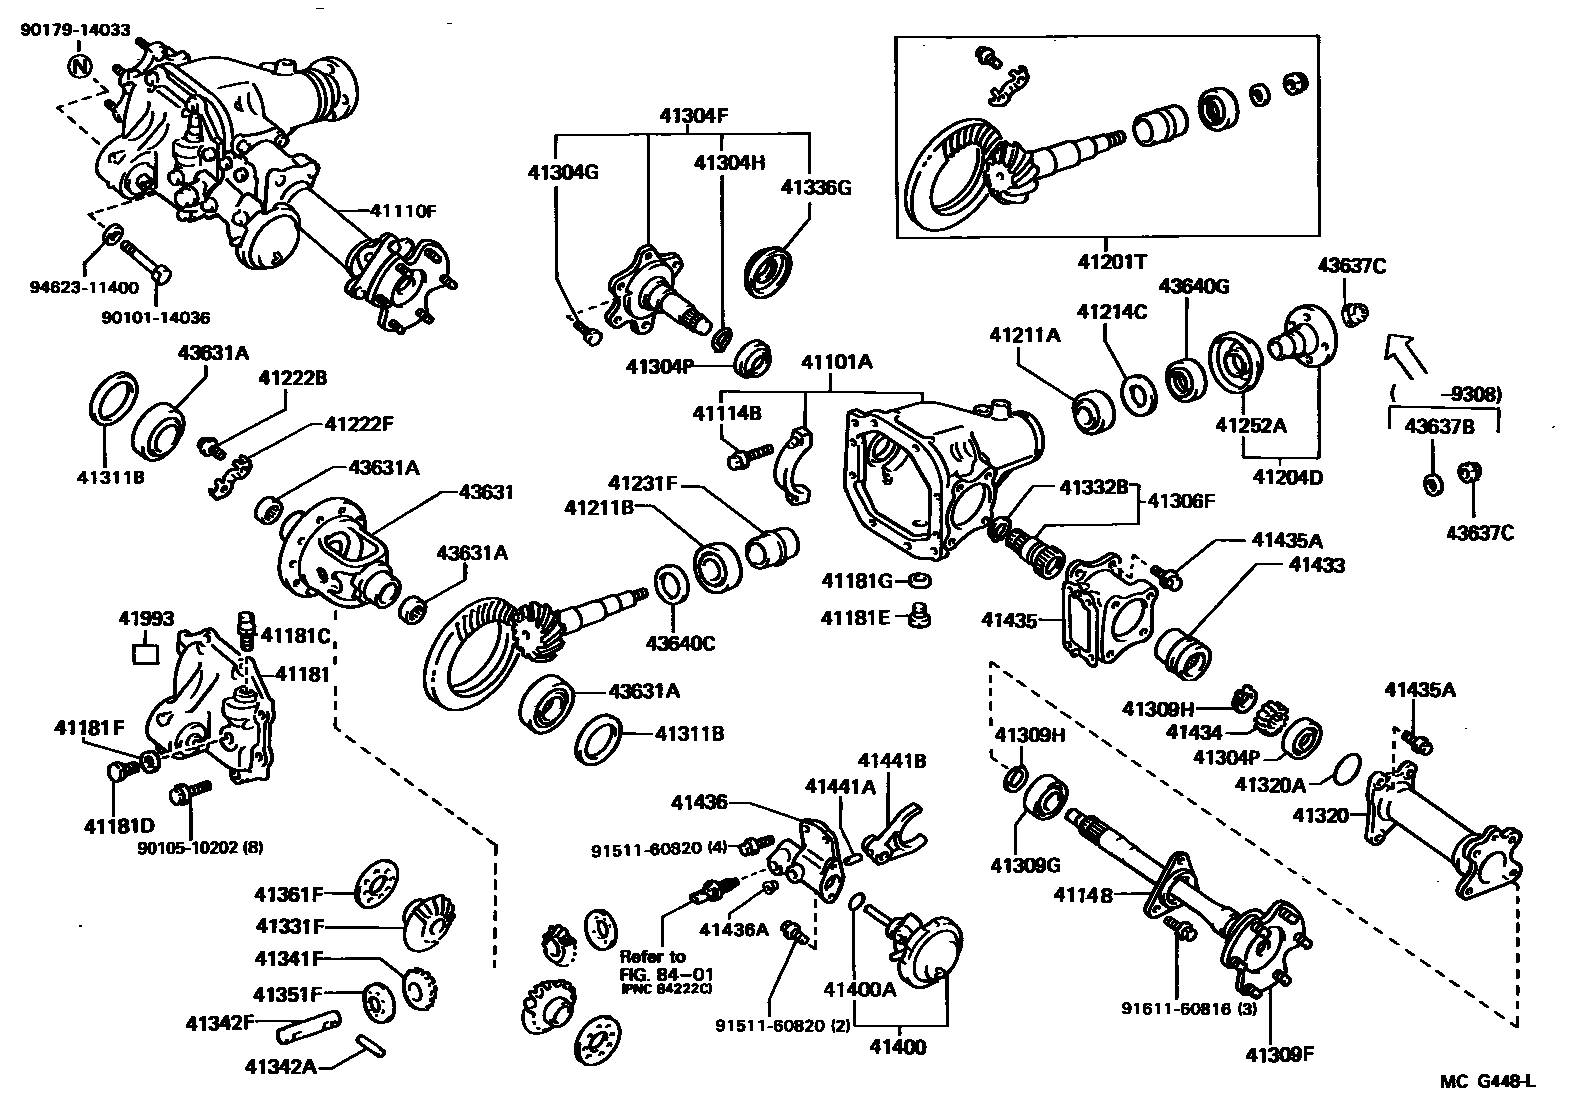 how much play is typical on a side gear shaft toyota 4runner rh toyota 4runner org toyota hilux front axle diagram 1982 toyota front axle diagram